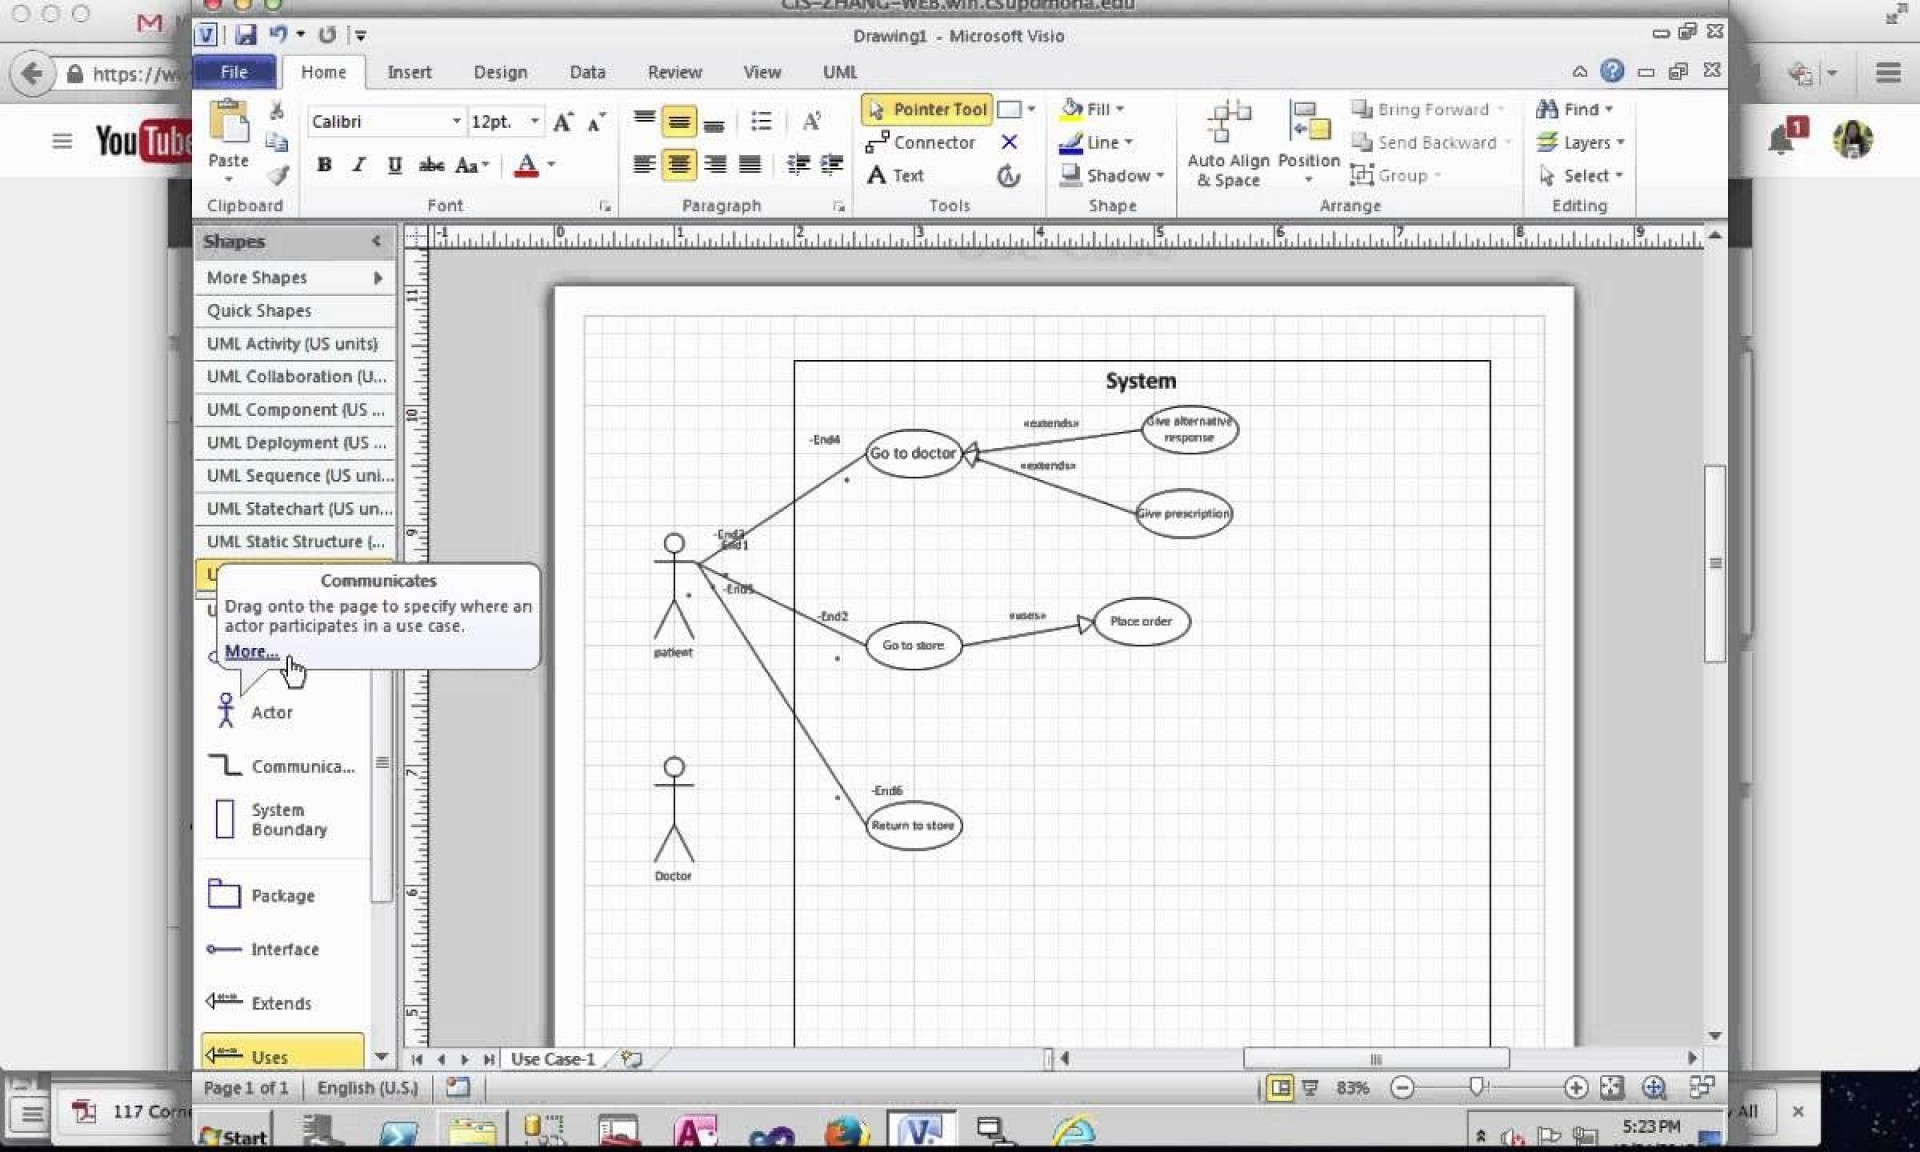 008 Sensational How To Draw Use Case Diagram In Microsoft Word 2007 Inspiration 1920